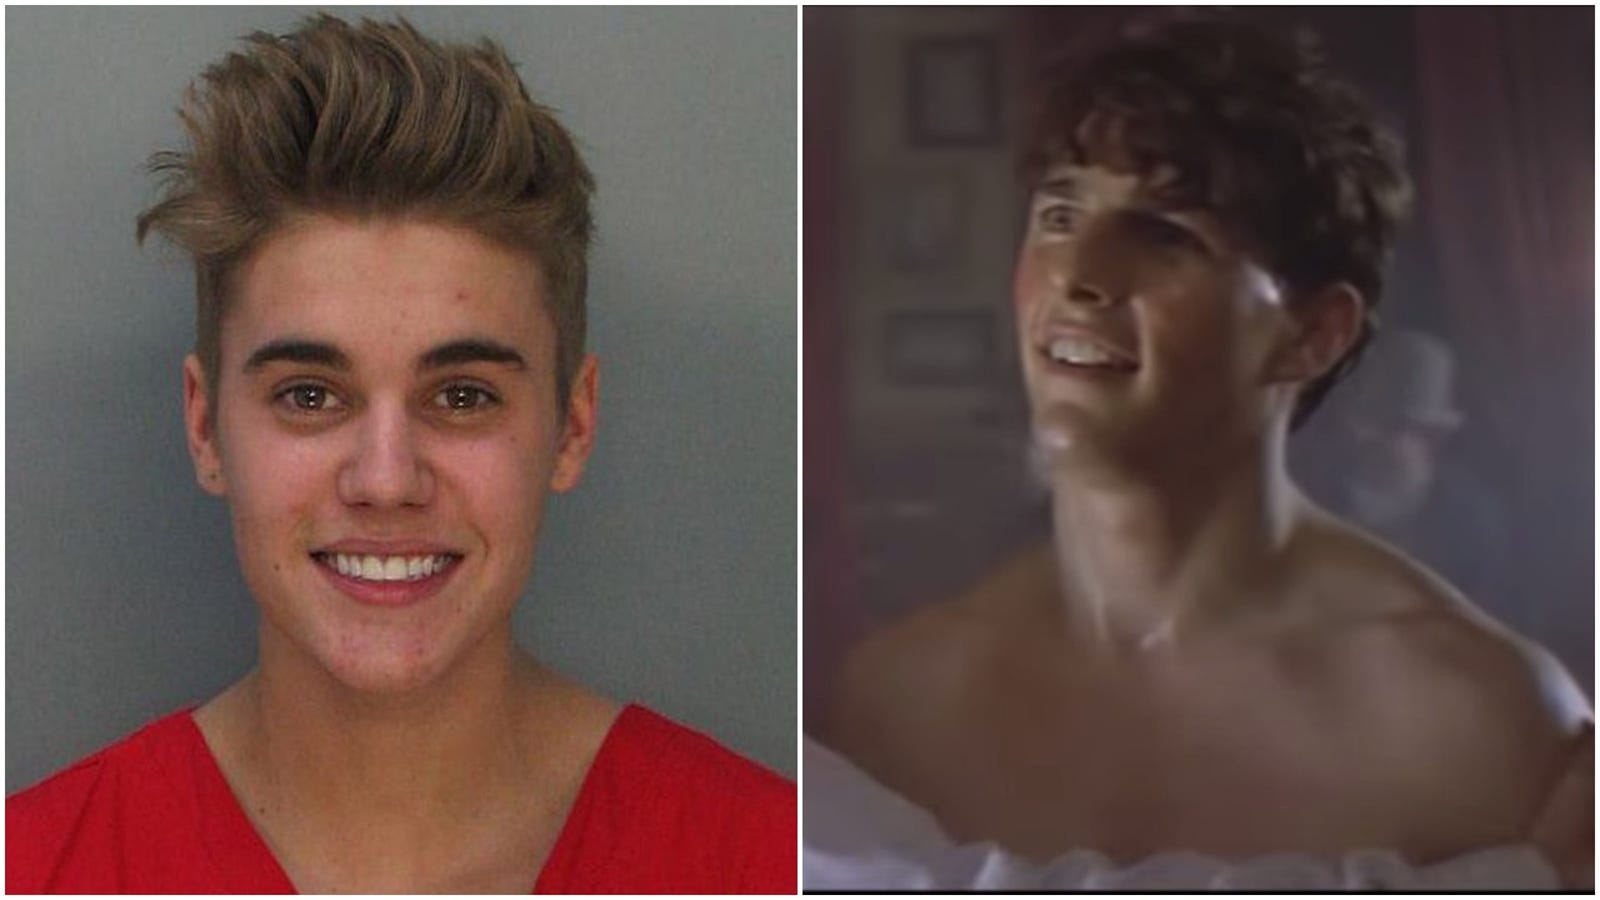 Justin Bieber challenged Tom Cruise to an MMA fight and Conor McGregor wants to host it